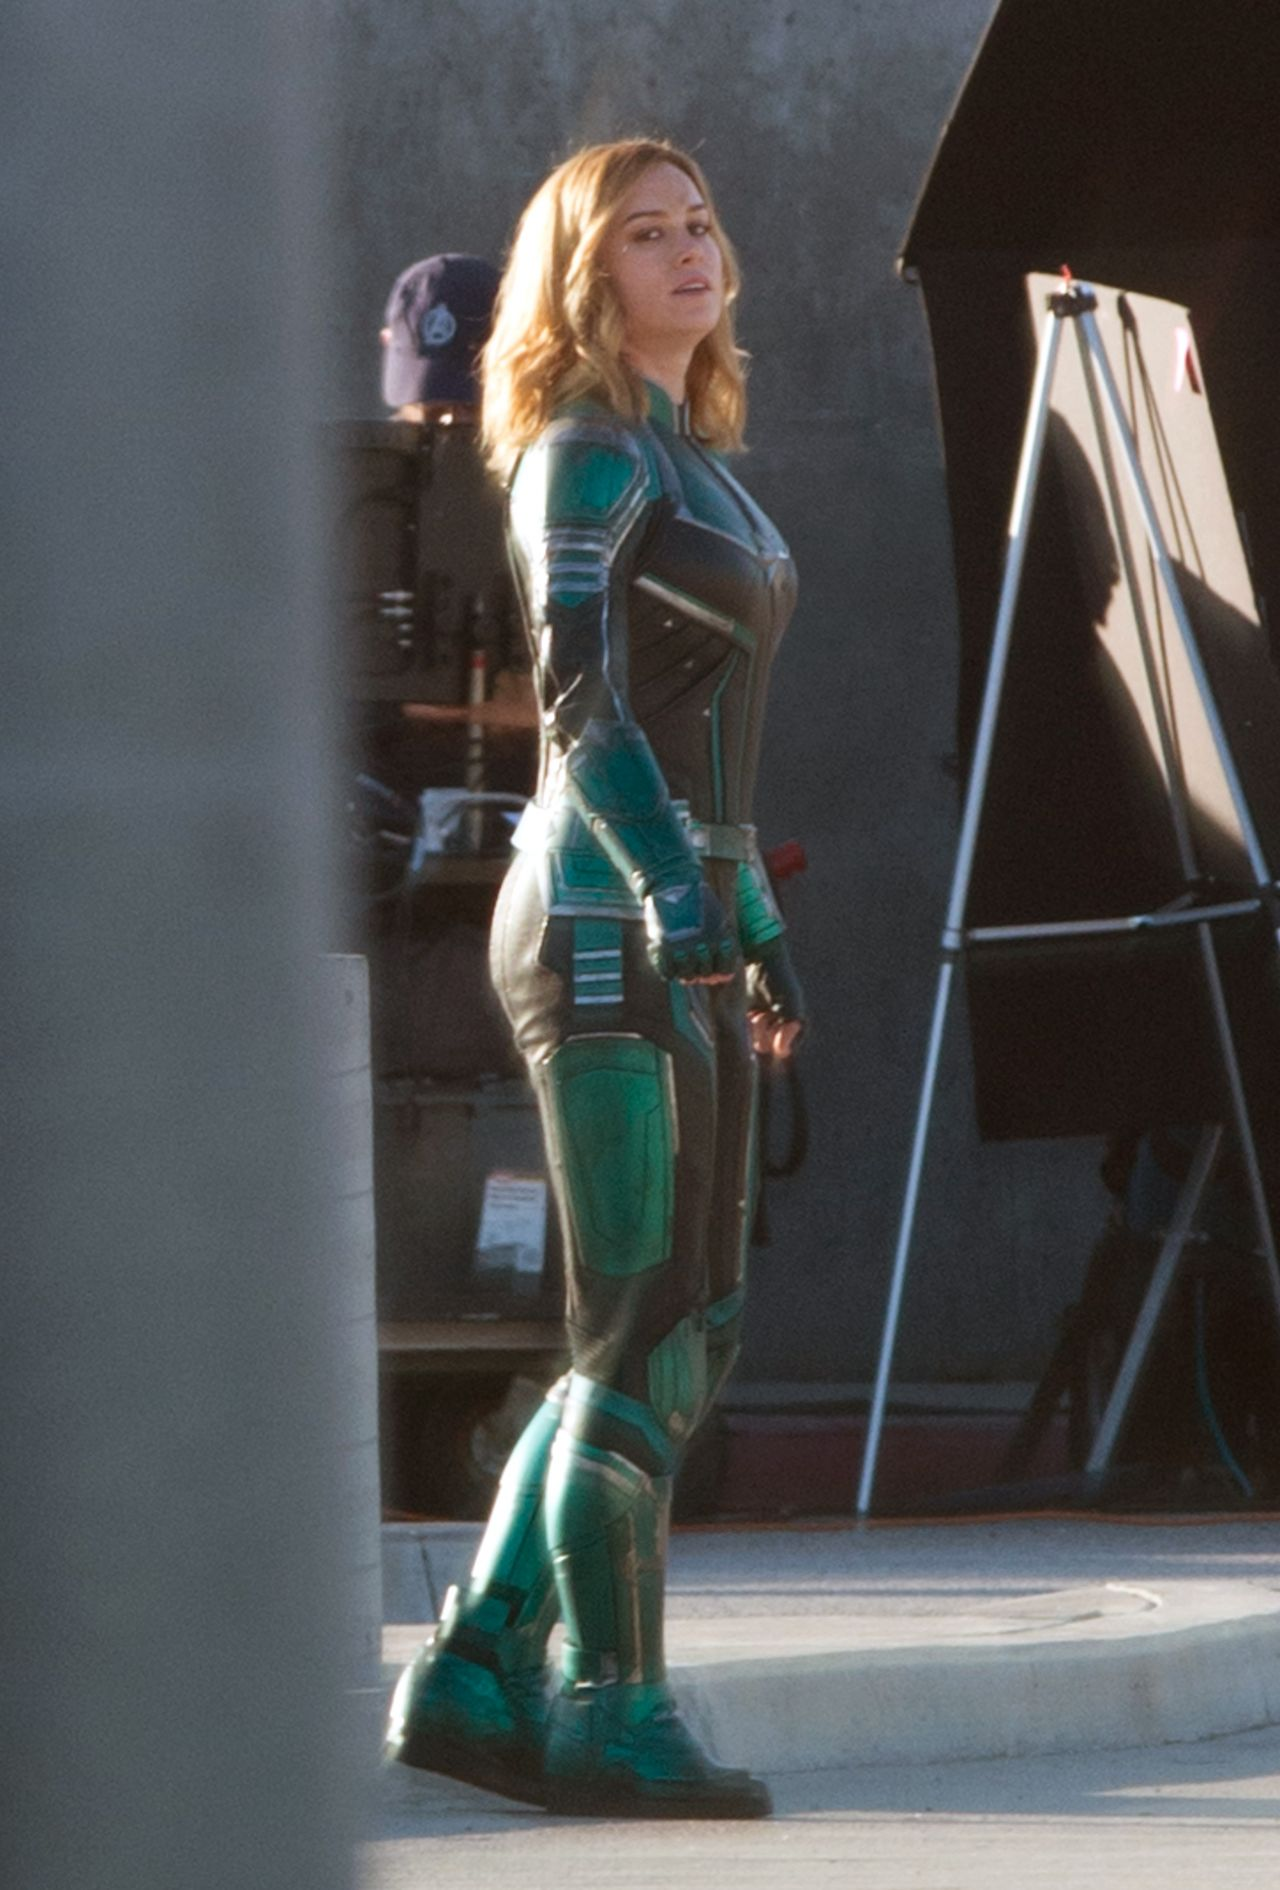 Brie Larson Quot Captain Marvel Quot Set In Los Angeles 03 19 2018